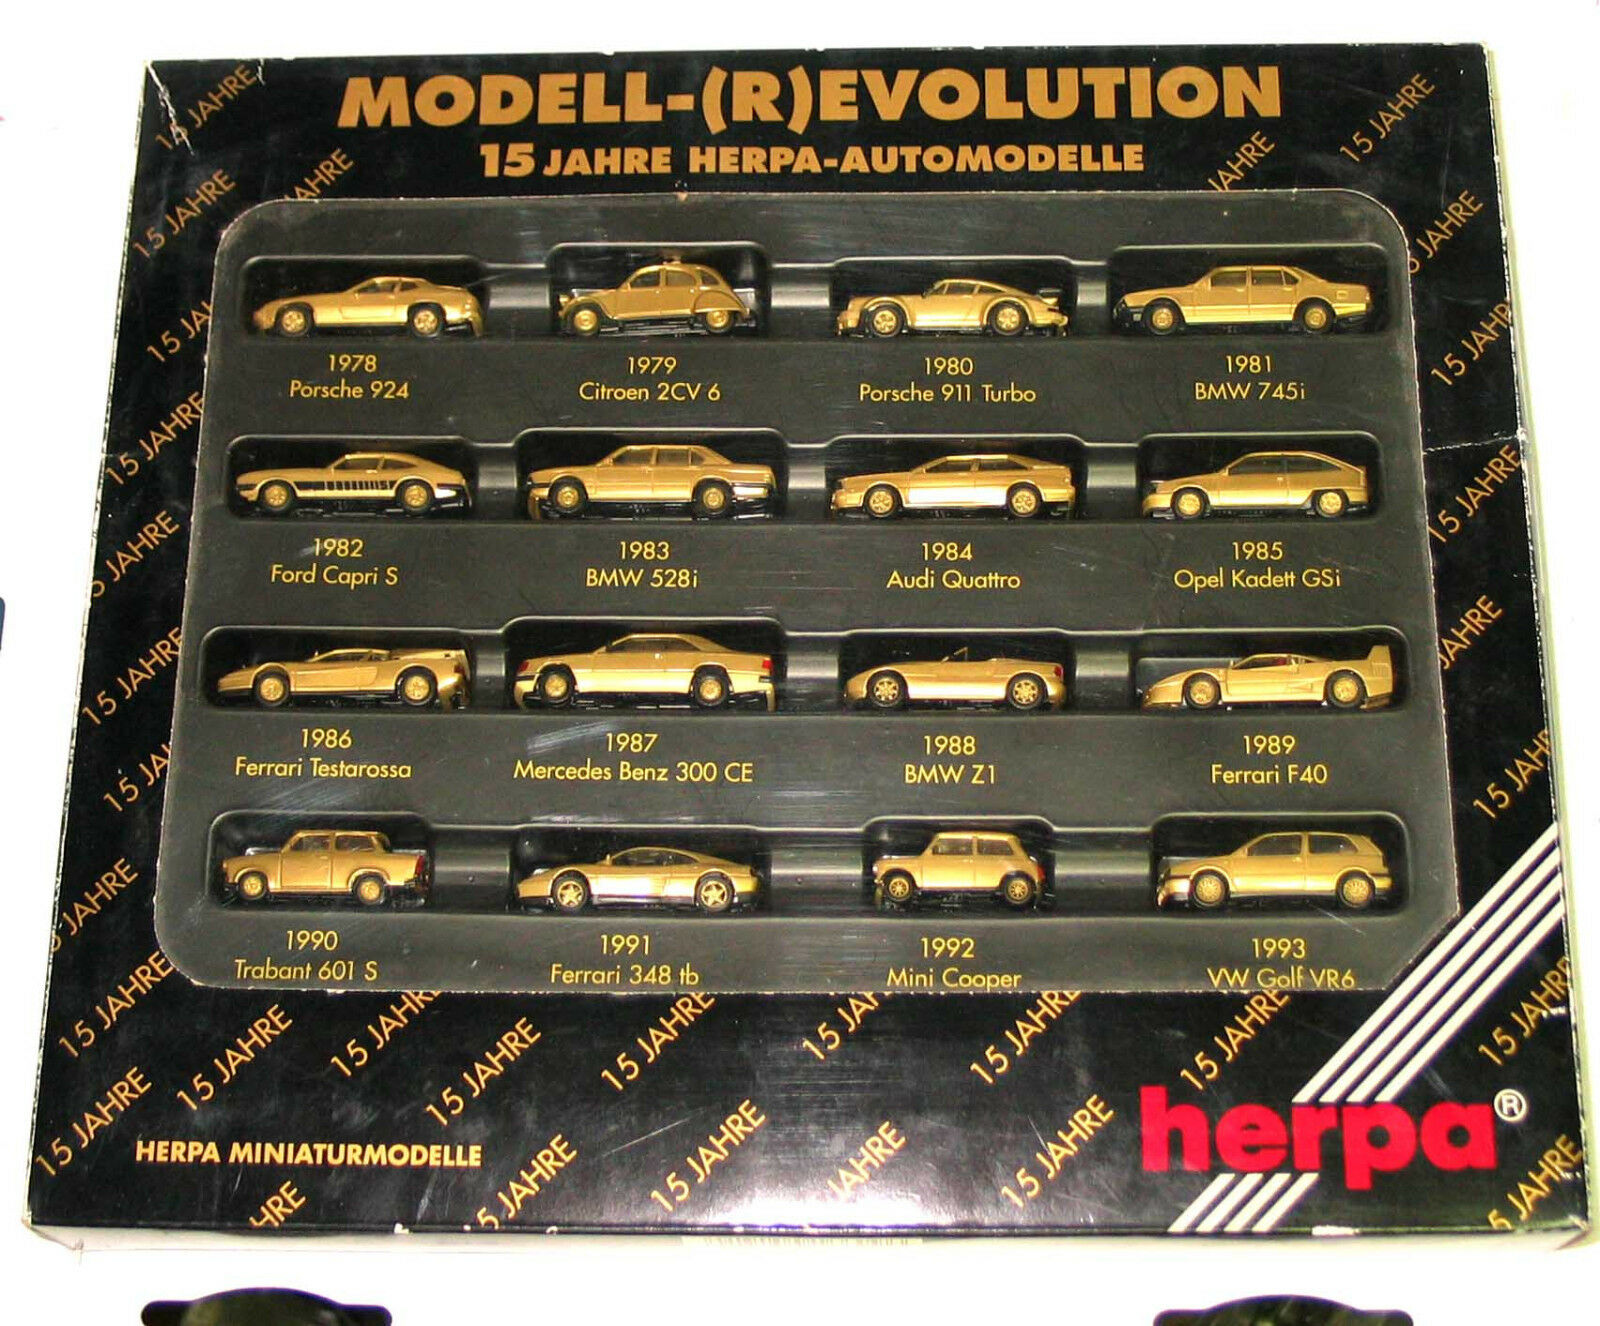 Herpa 1 87 166096 set 15 year anniversary model - (r) Evolution golden Emb.